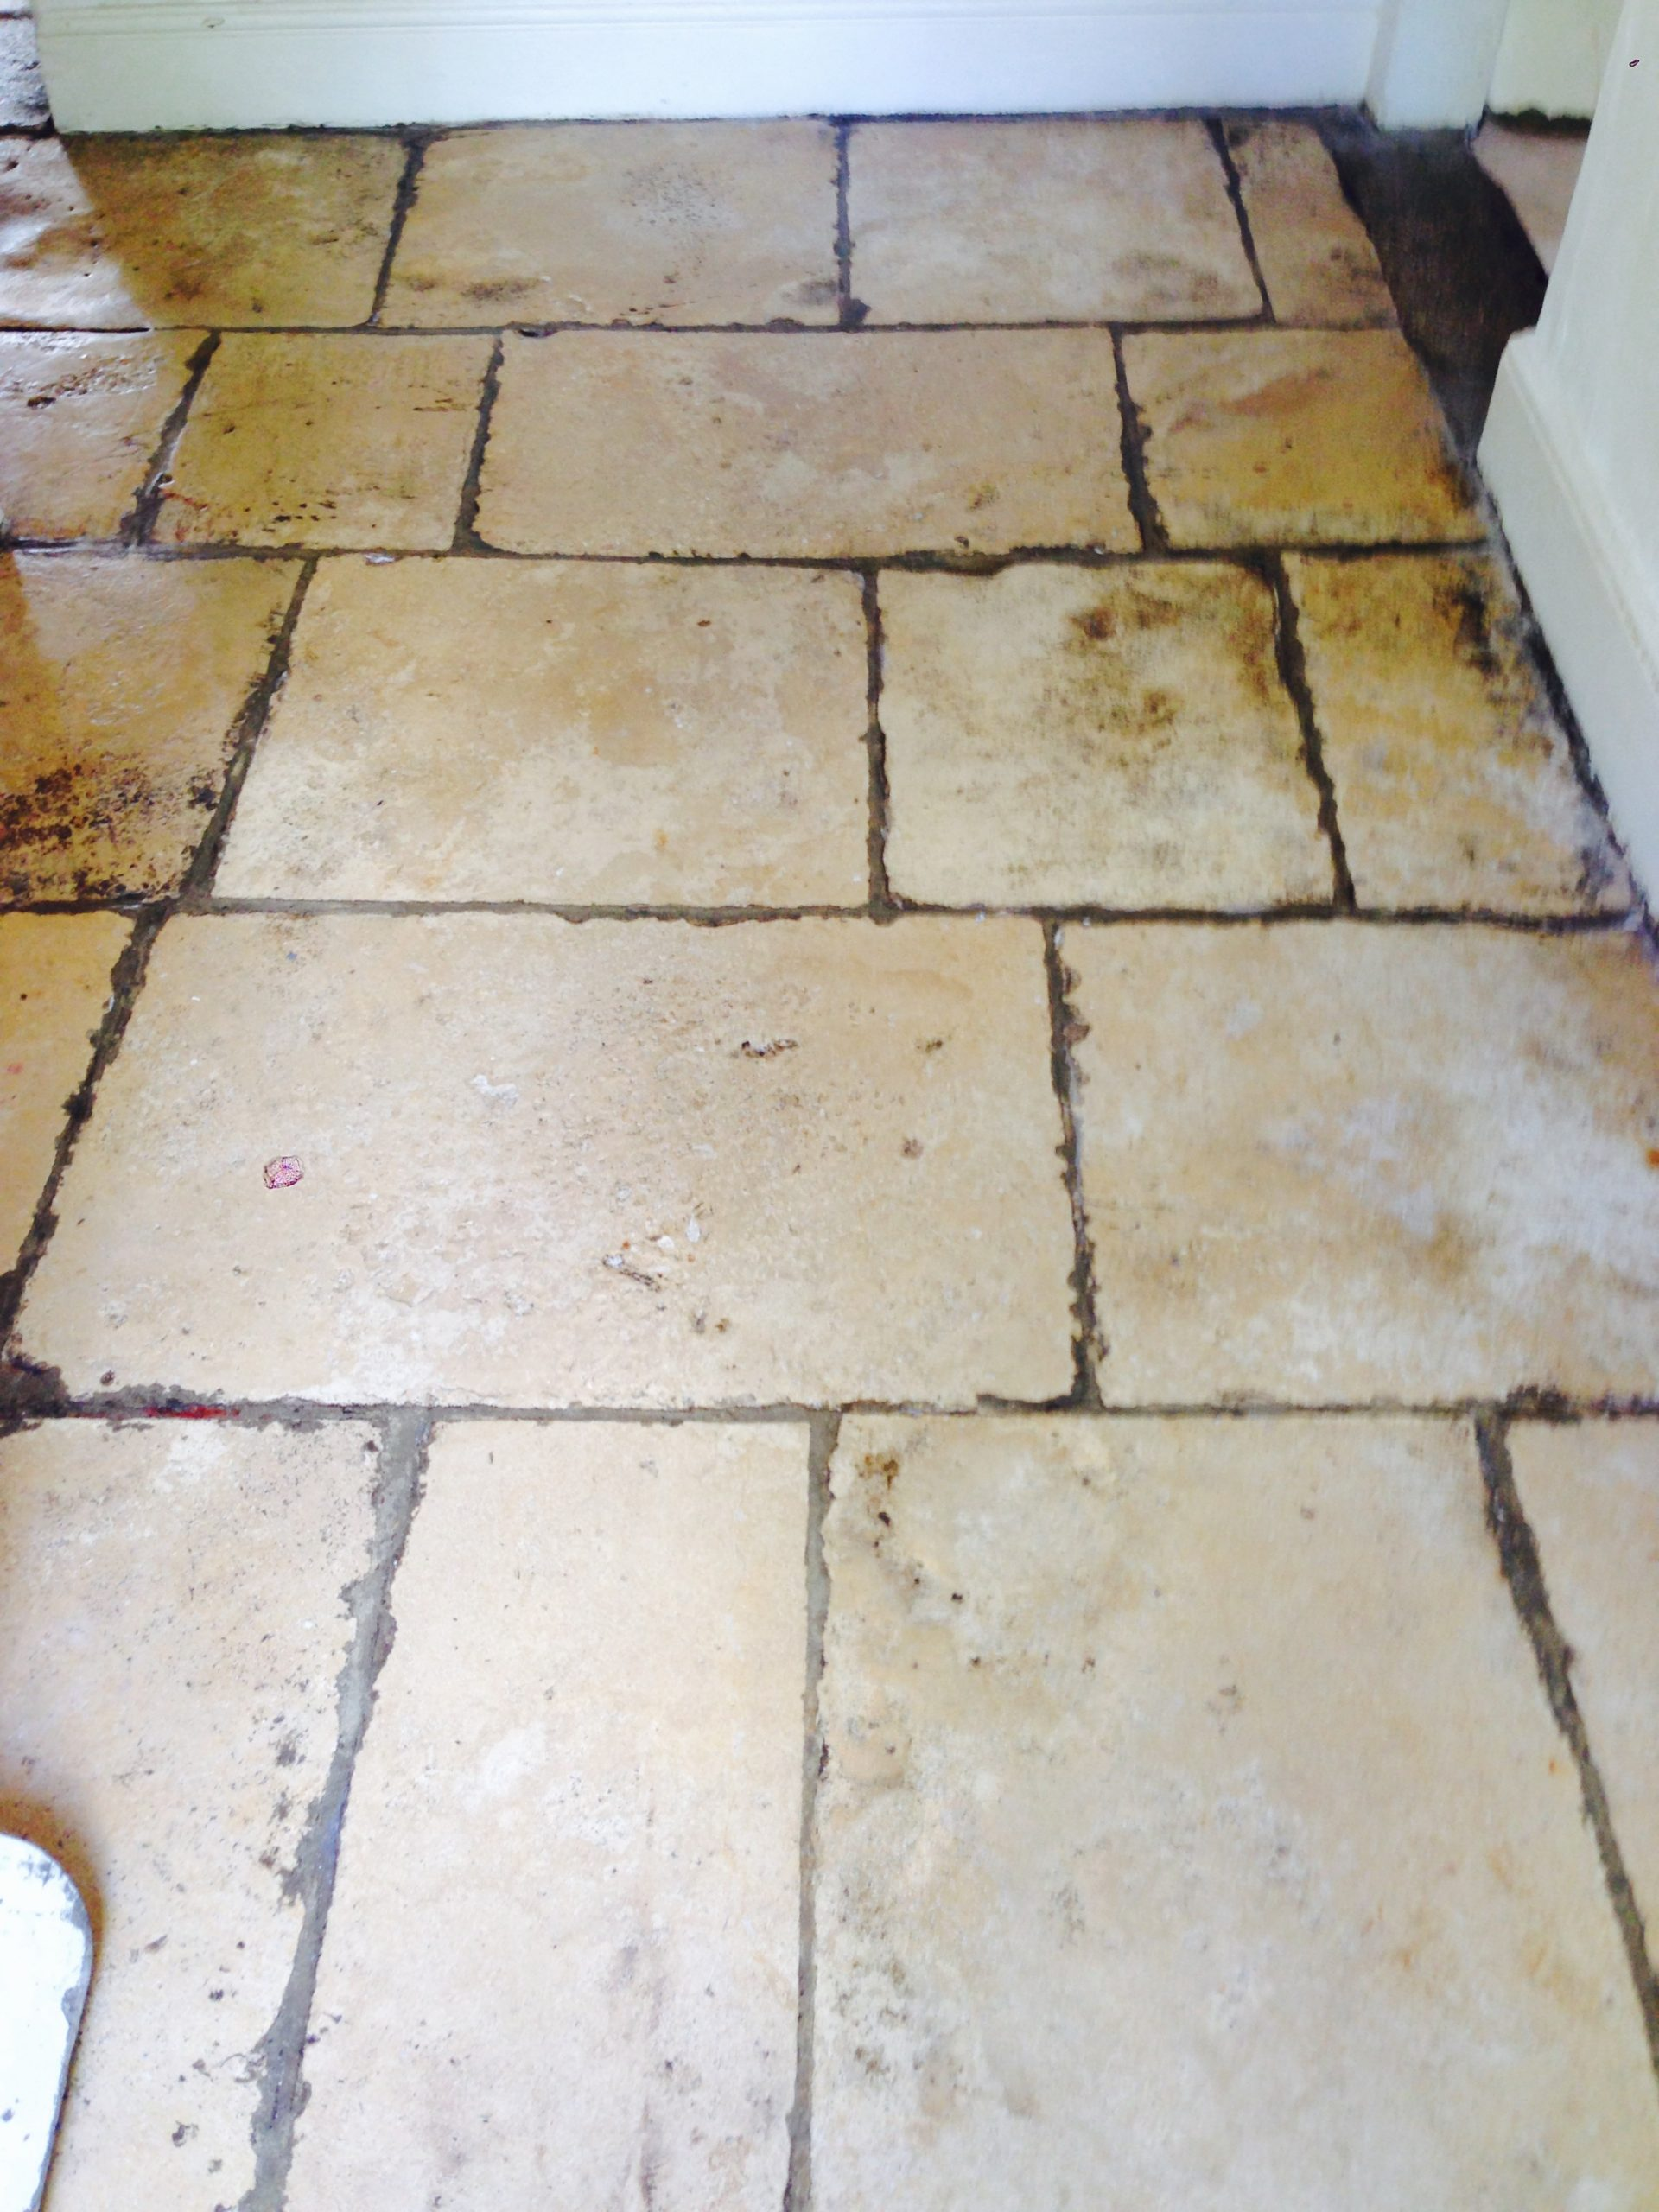 Restoring old cotswold flag stones cotswold stone floor cleaners we used a high specification polymer impregnating similar to highlight the limestones natural character allowing the stone to breathe and adapt to changing dailygadgetfo Images